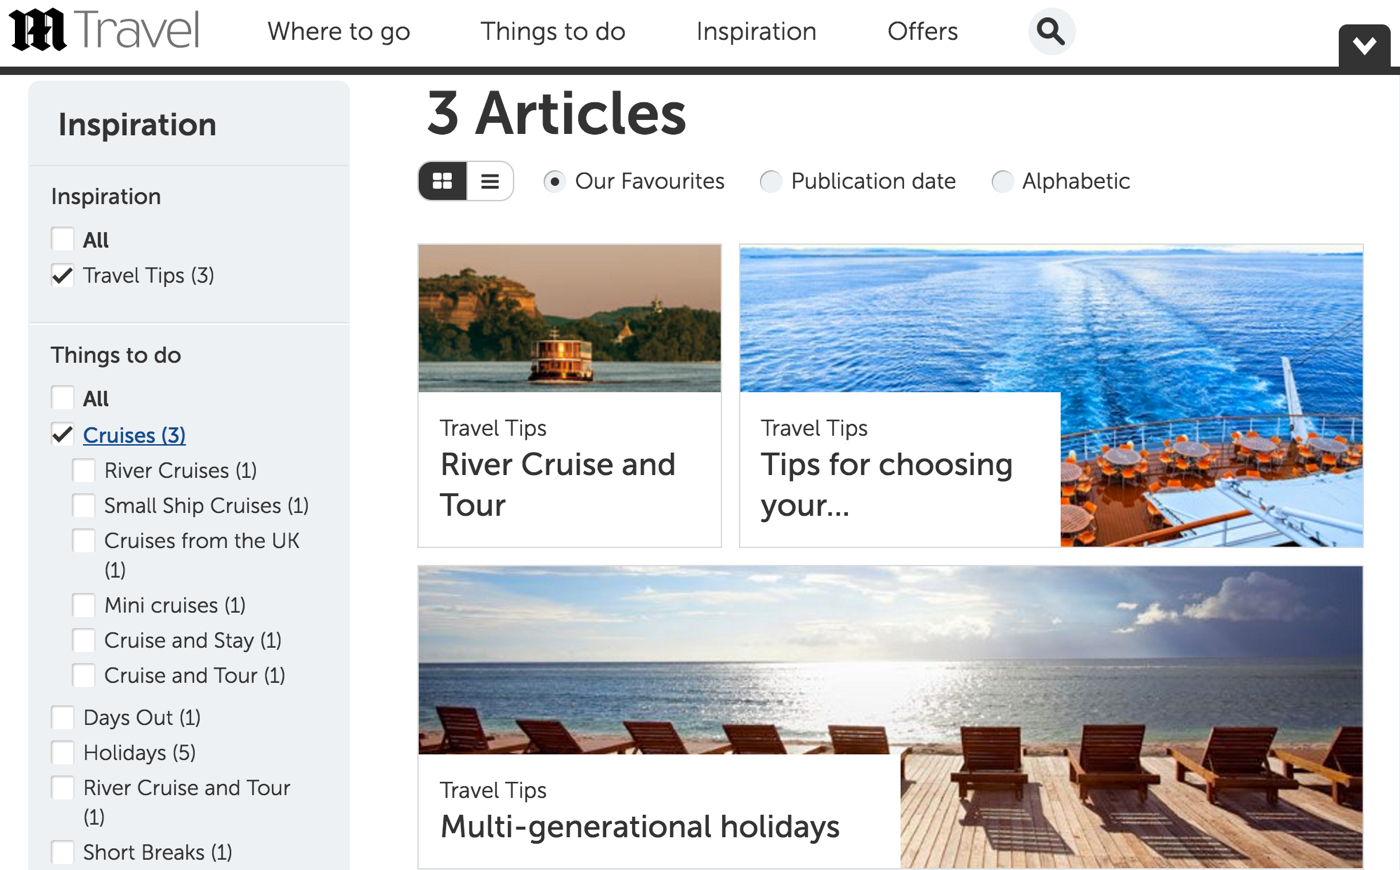 Destination pages with article content